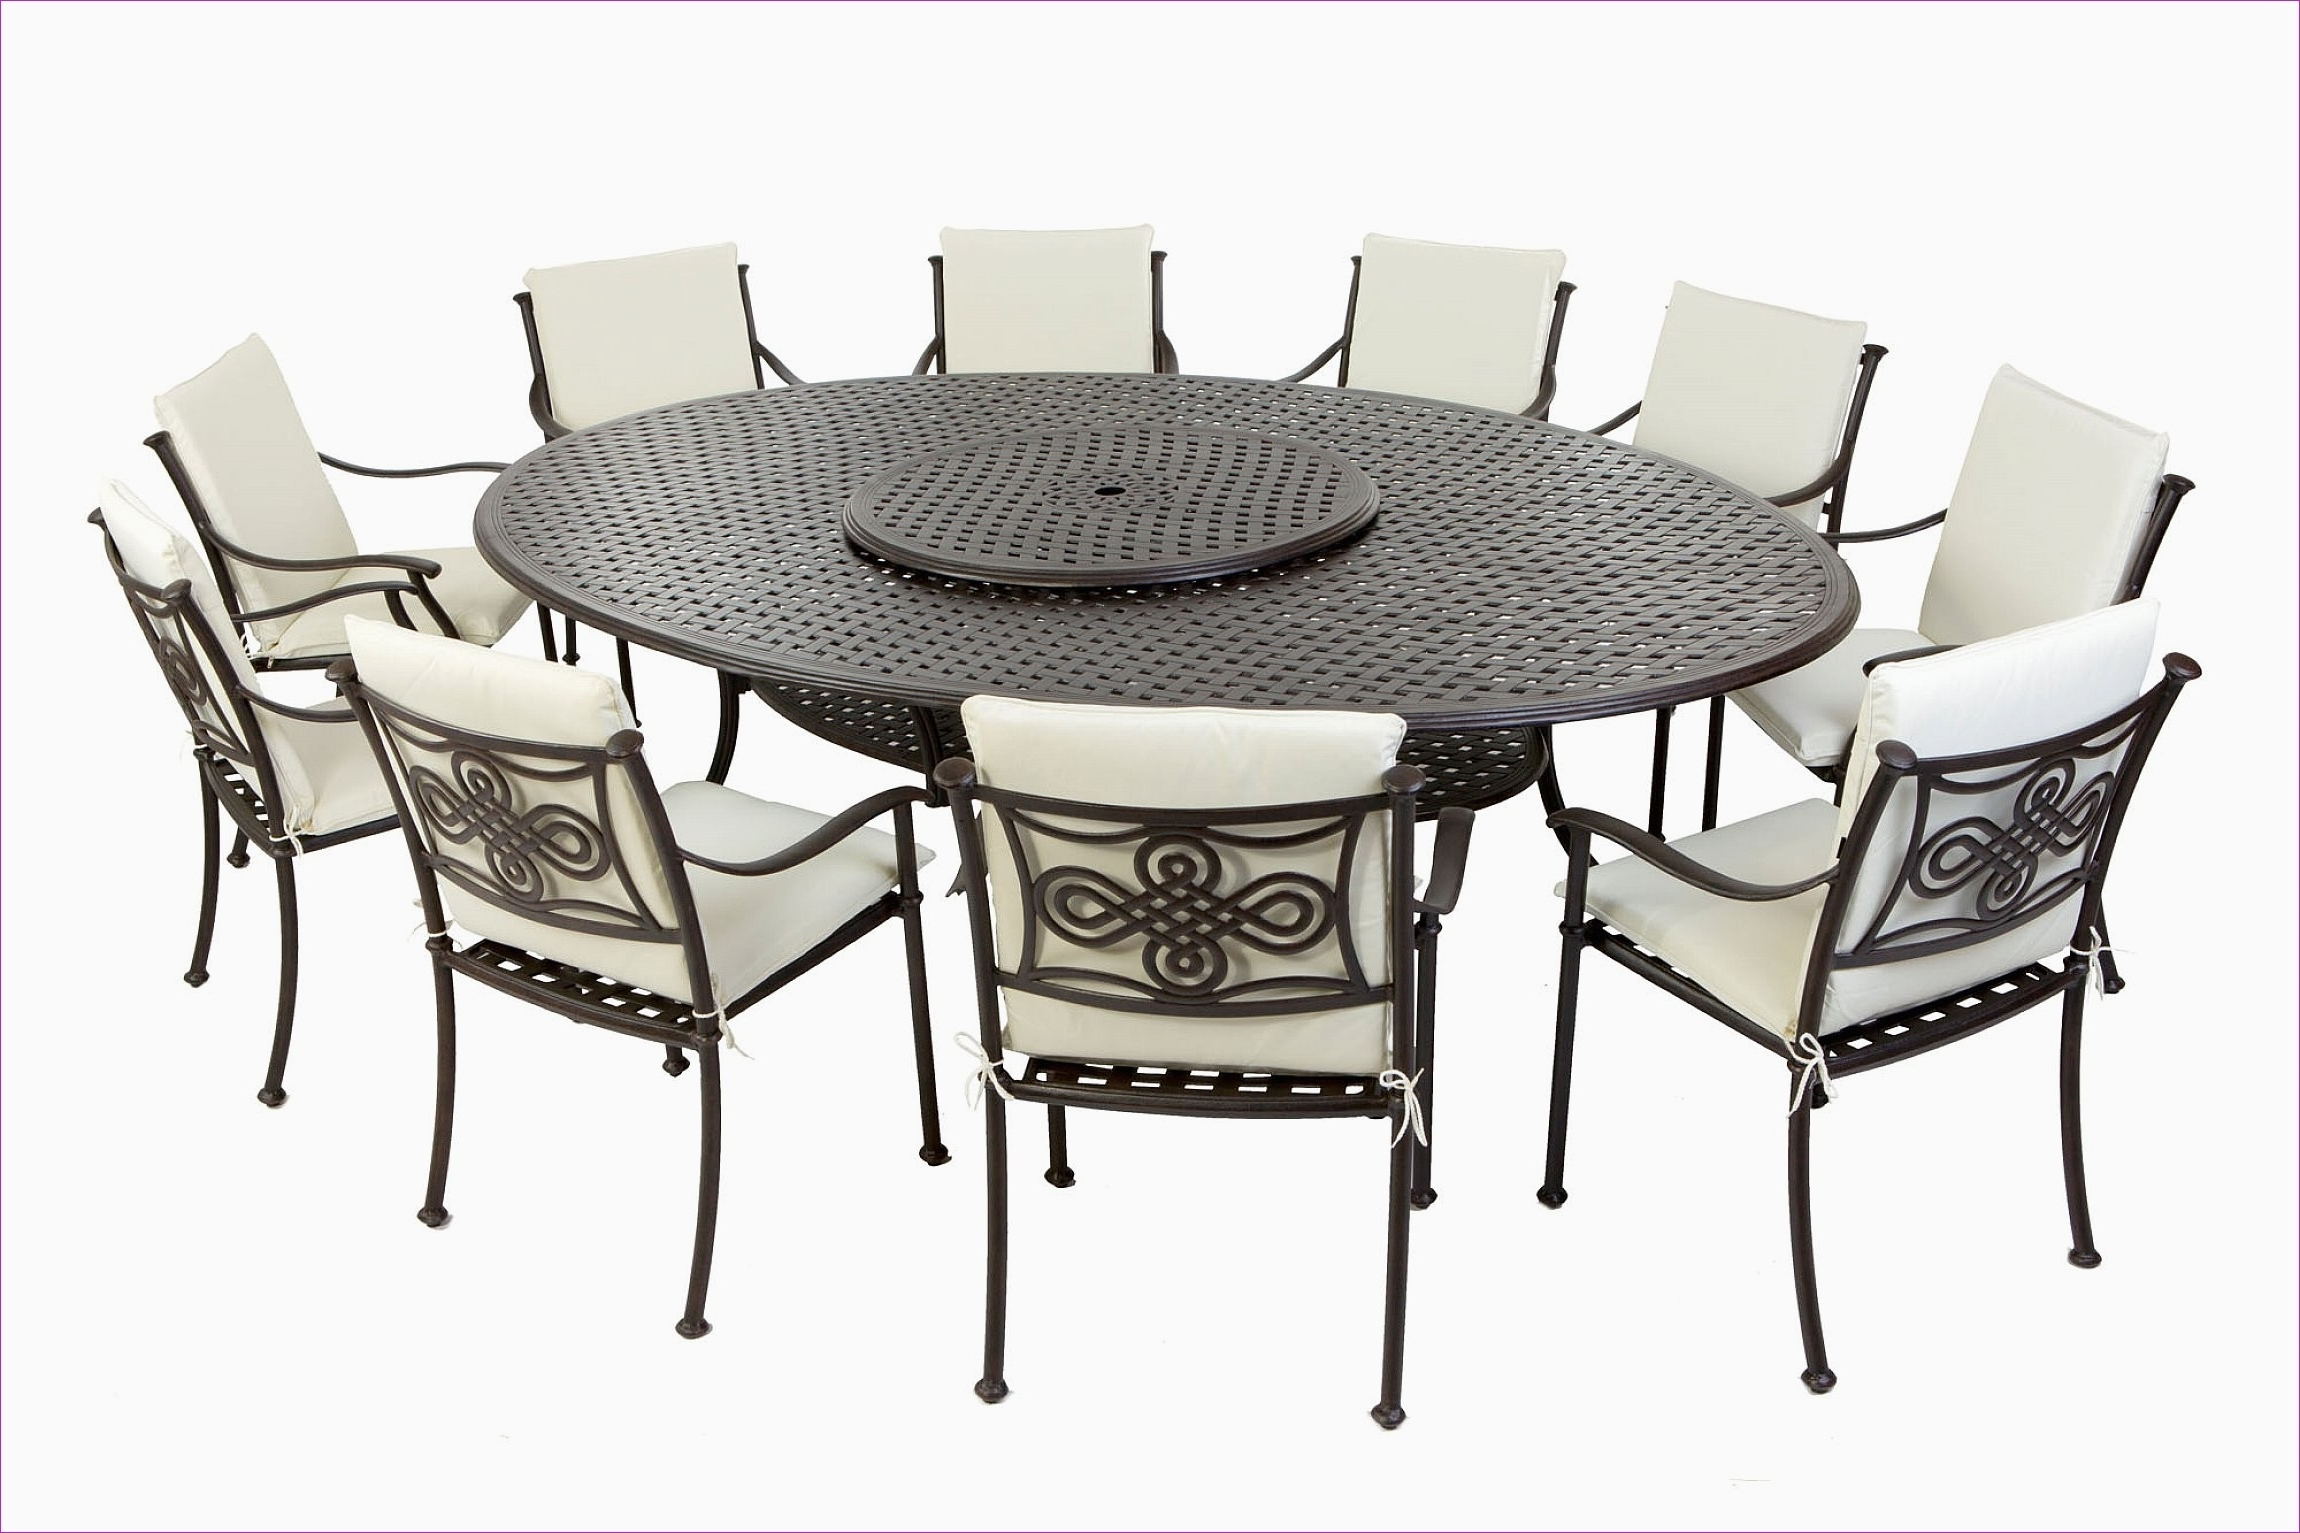 Fashionable Conversation Sets Patio Furniture Clearance Fresh Endearing Sears In Sears Patio Furniture Conversation Sets (View 4 of 15)